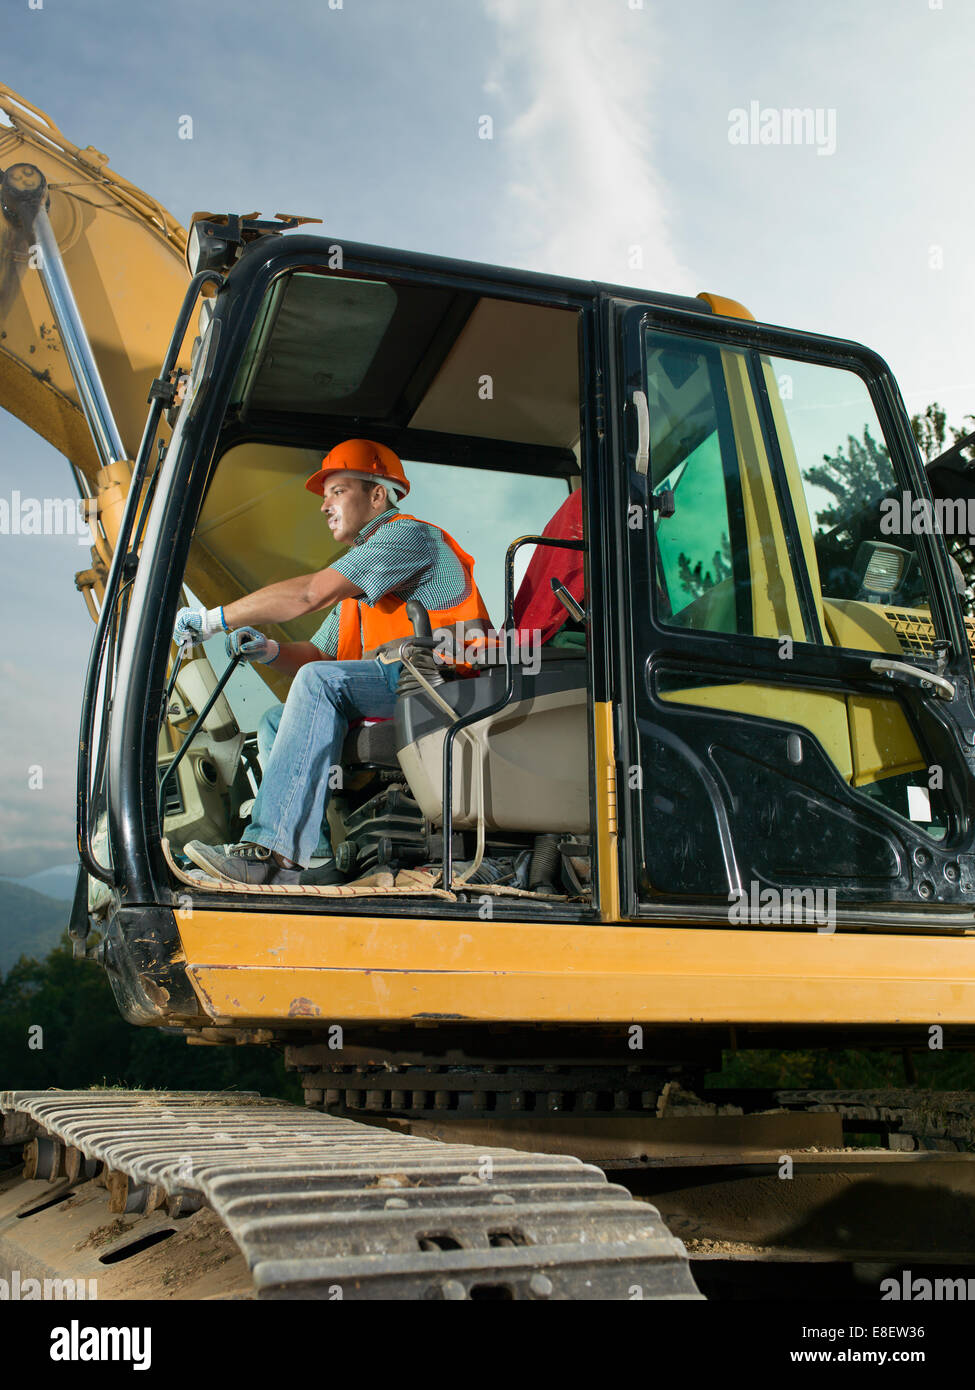 Man On Bulldozer : Man operating bulldozer stock photos